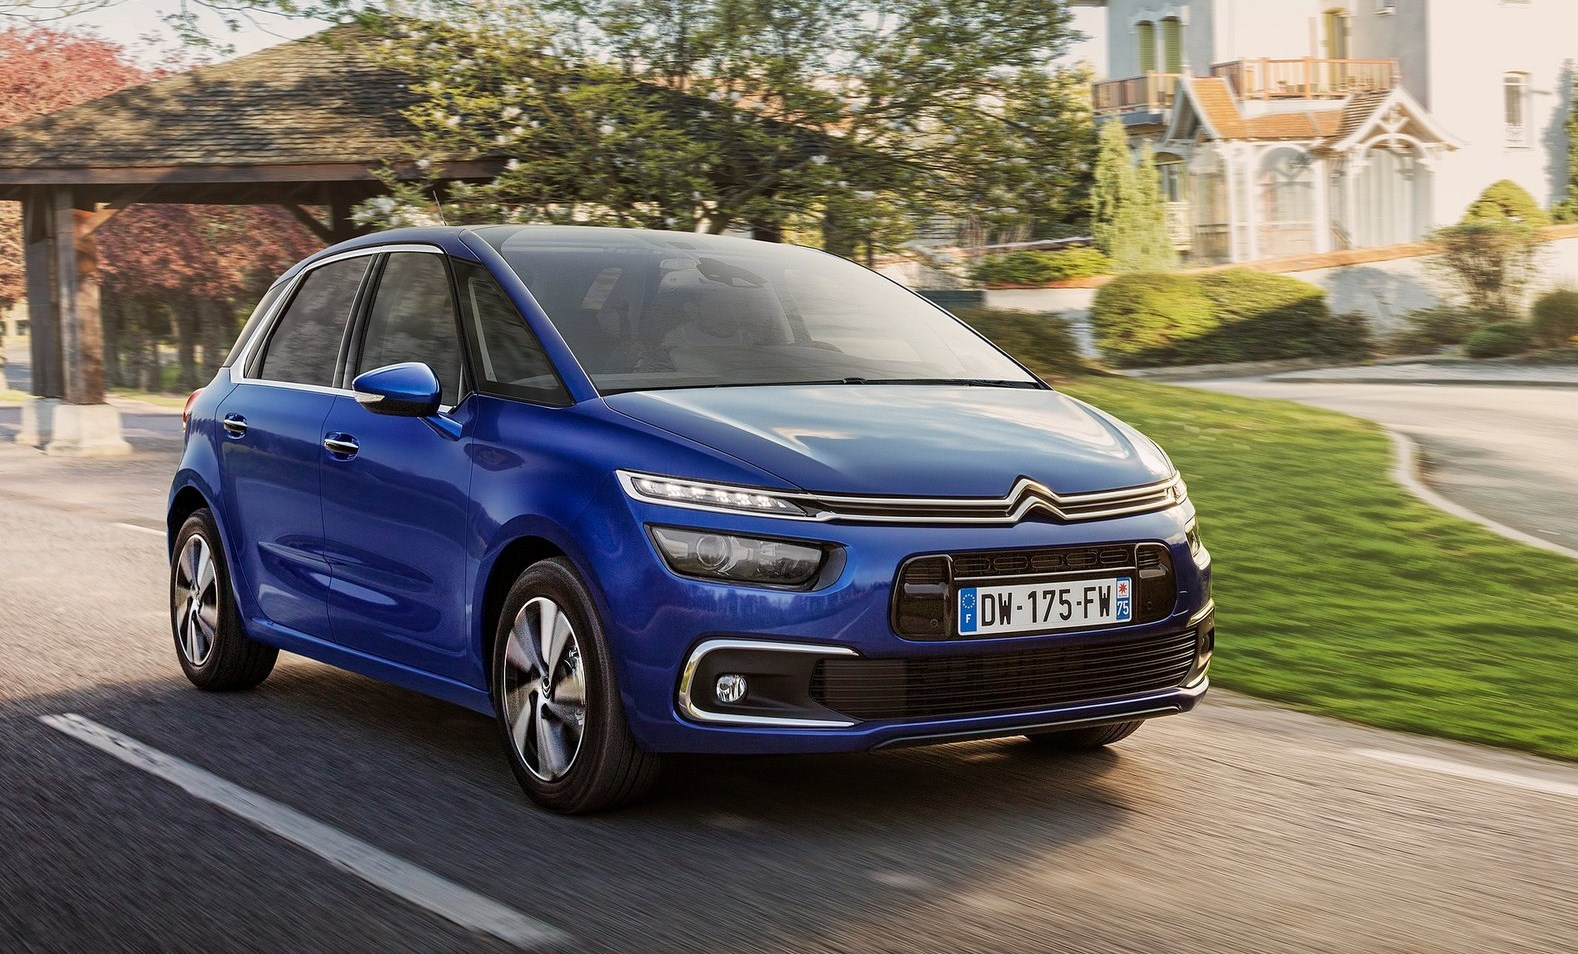 2019 Citroen C4 Aircross photo - 4